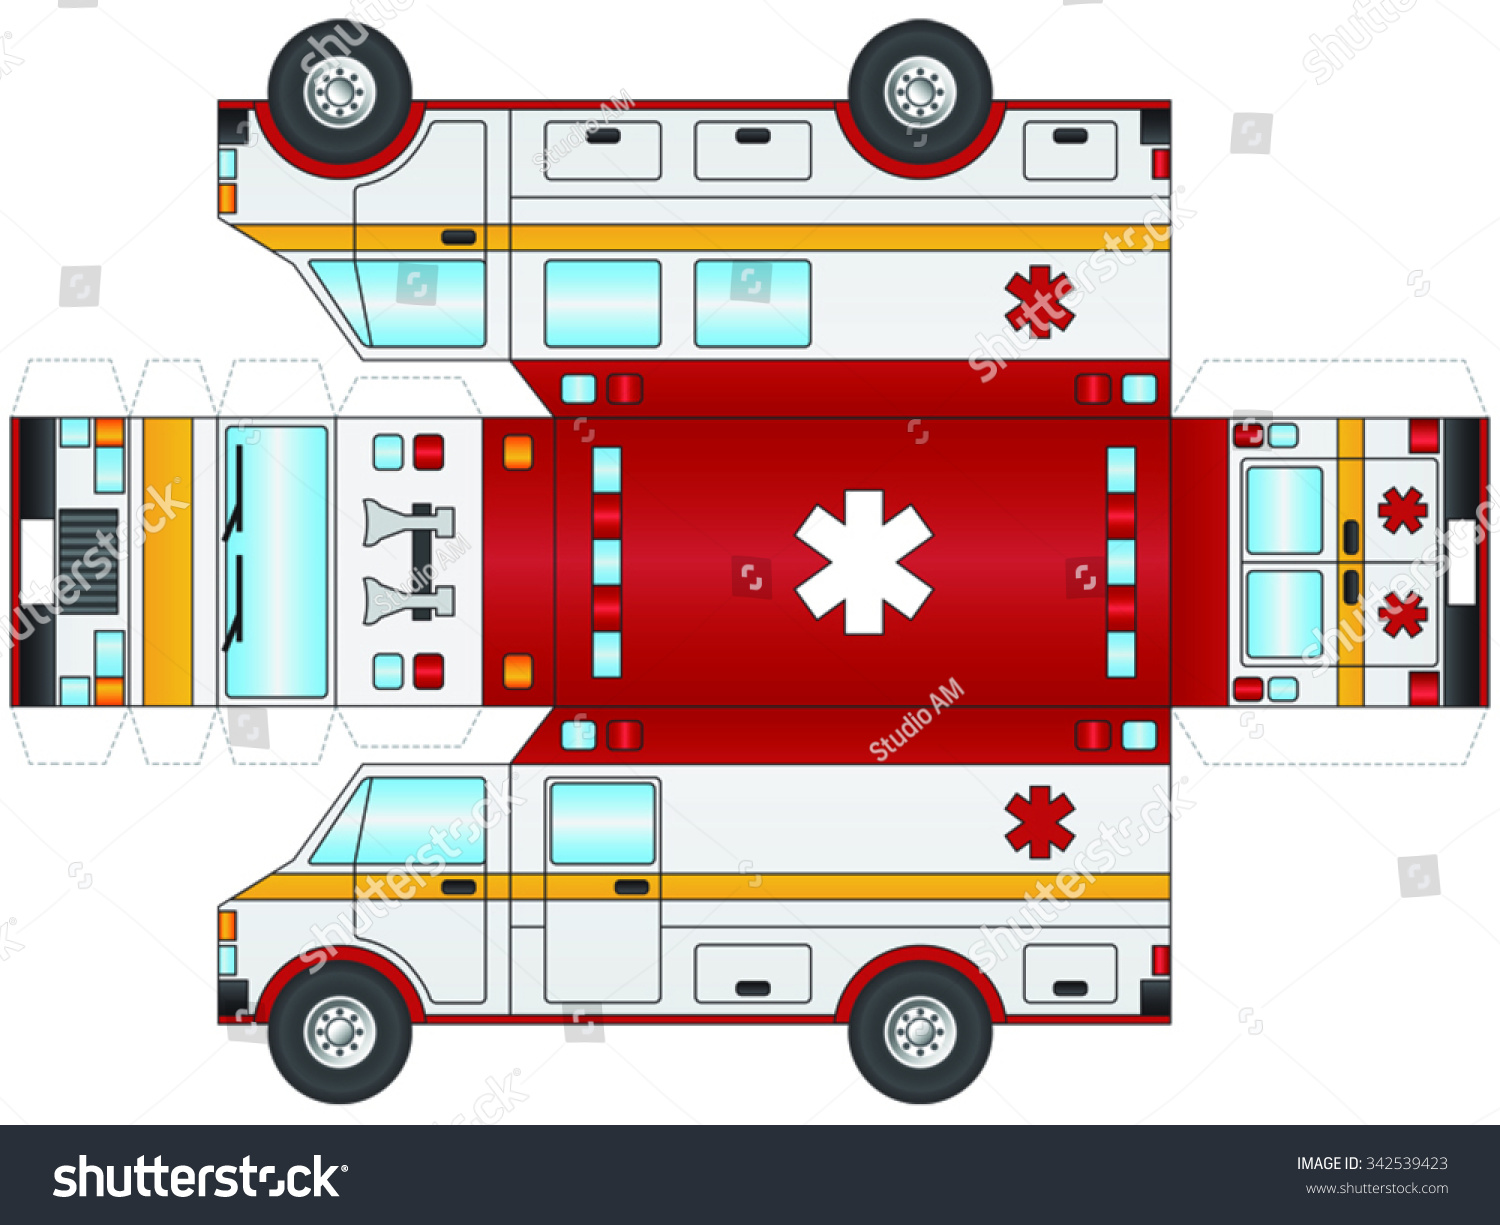 how to make an ambulance out of paper